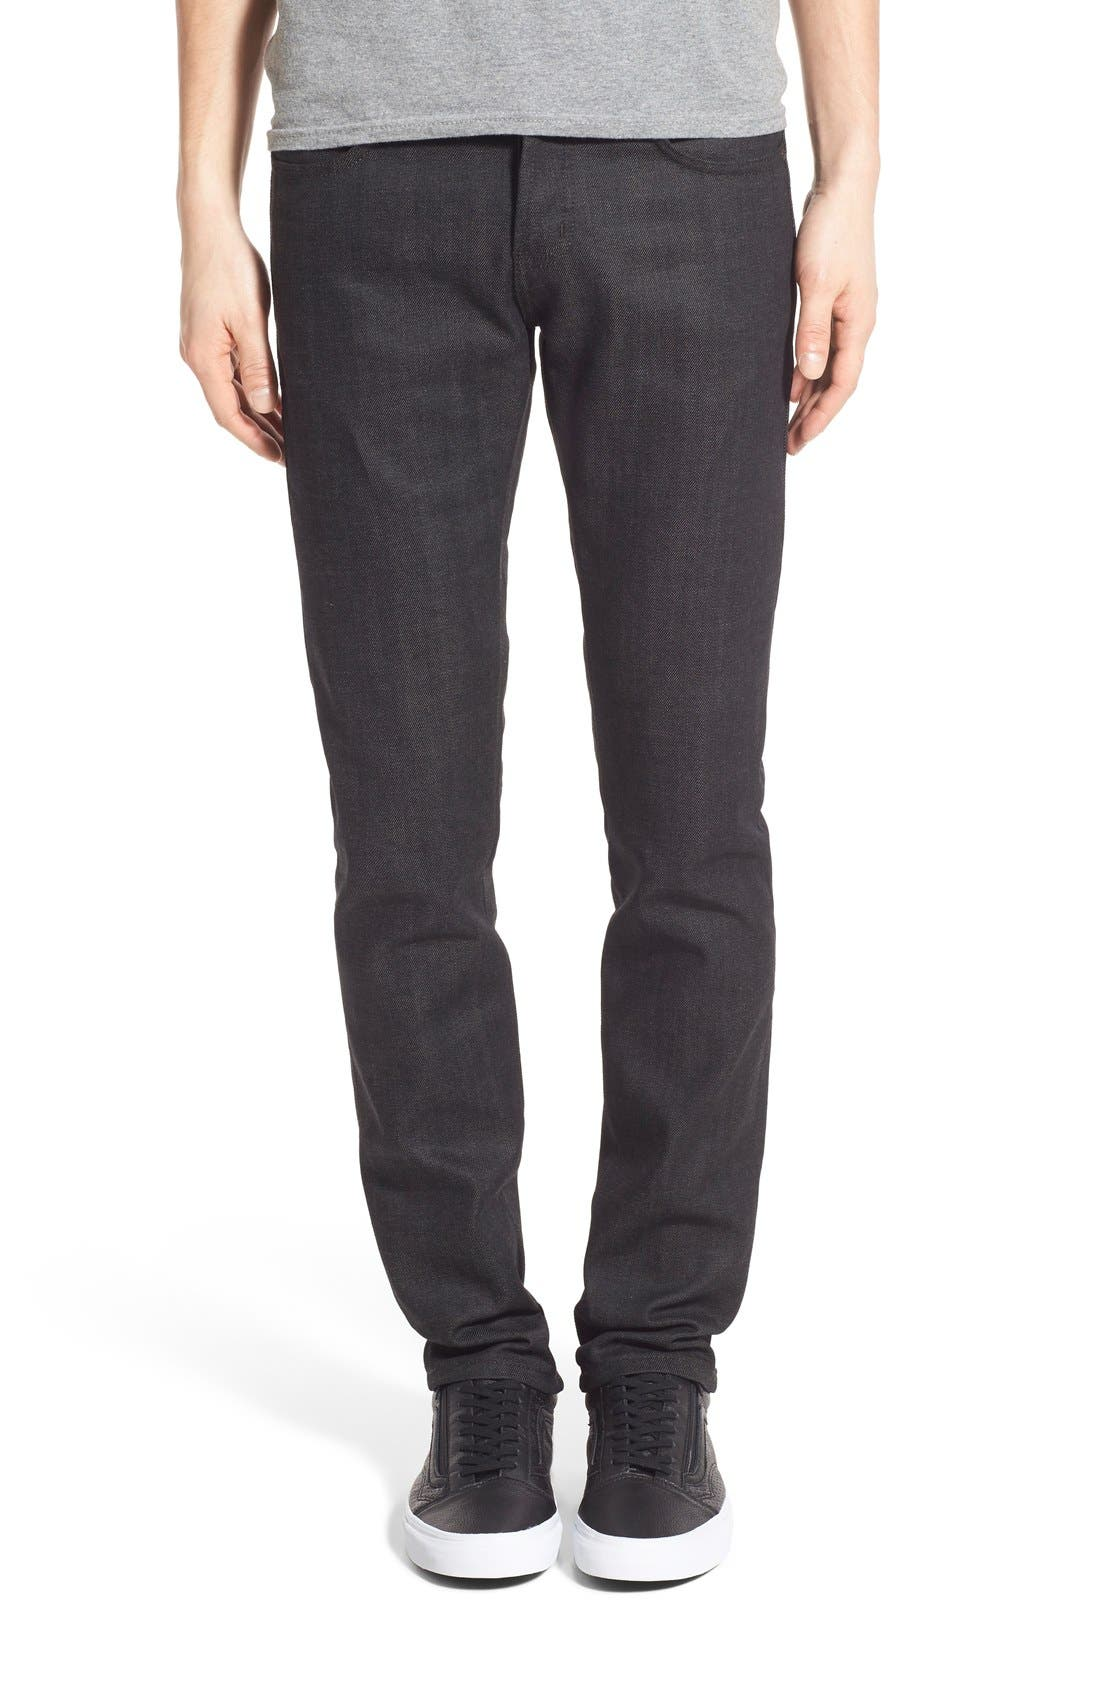 Naked & Famous Super Skinny Guy Skinny Fit Stretch Jeans,                             Main thumbnail 1, color,                             BLACK X GREY